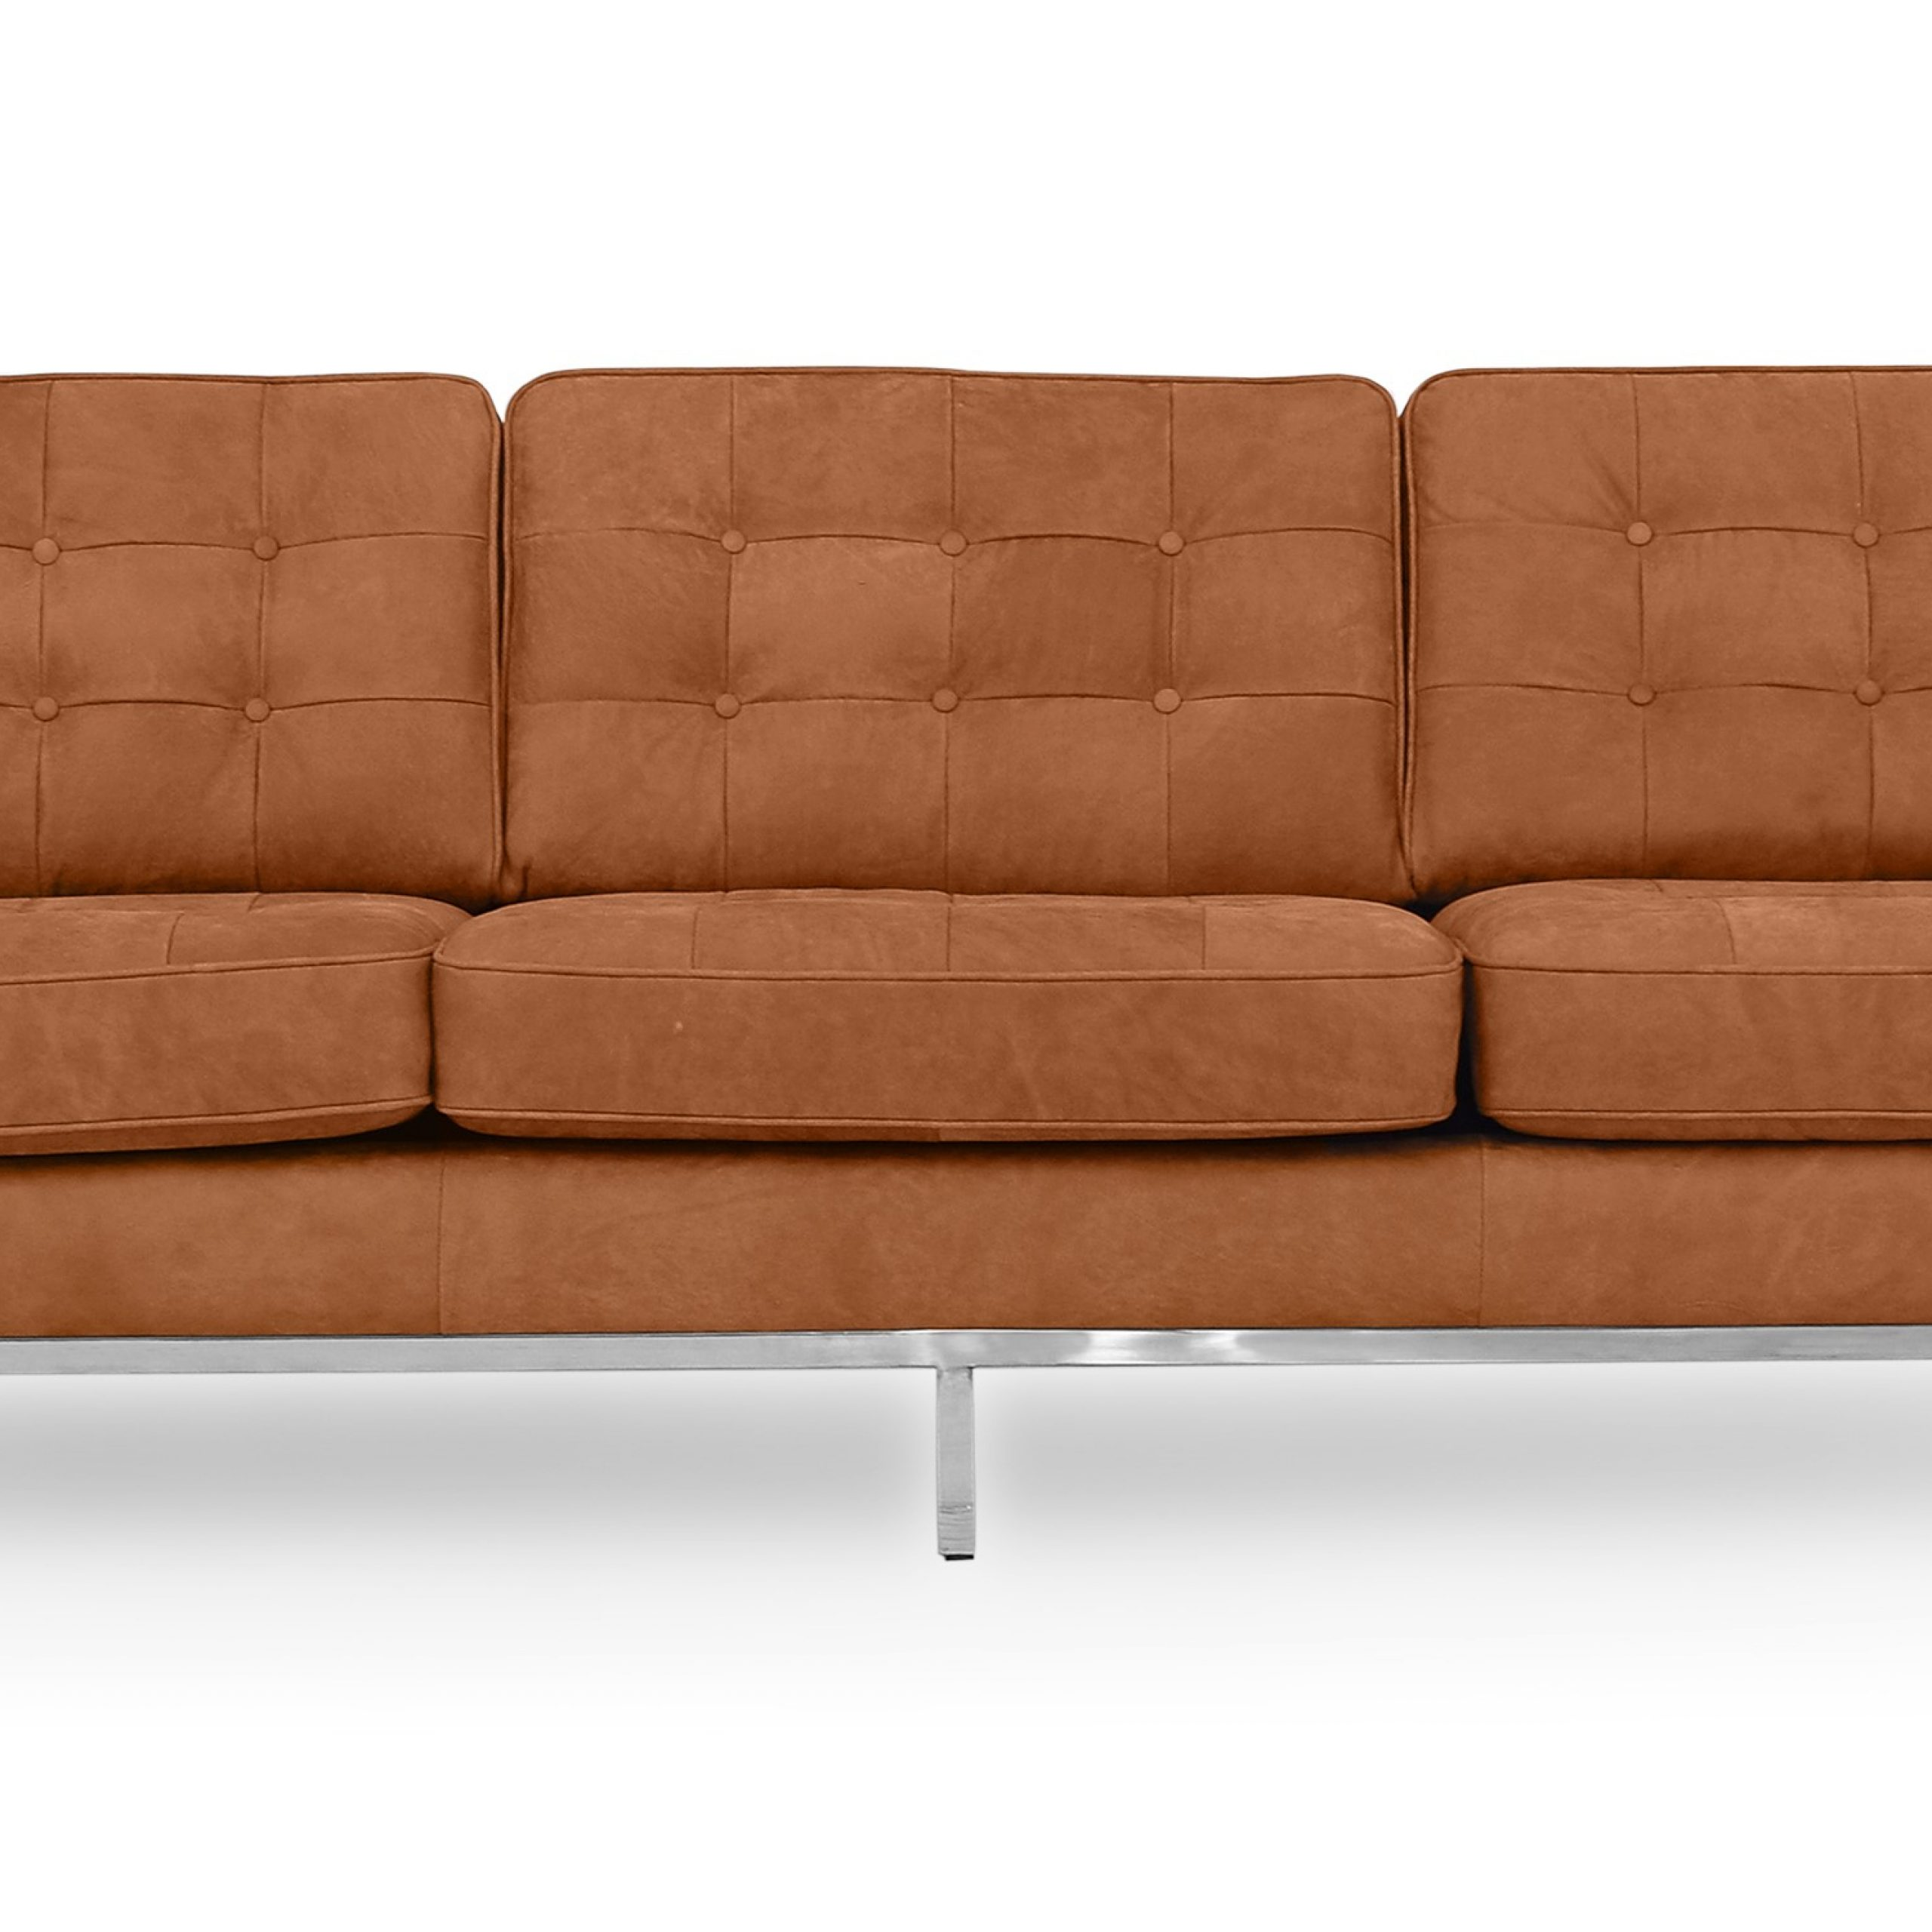 """Kardiel Florence Mid Century Modern 89"""" Sofa, Cognac Full Pertaining To Florence Mid Century Modern Right Sectional Sofas (View 1 of 15)"""